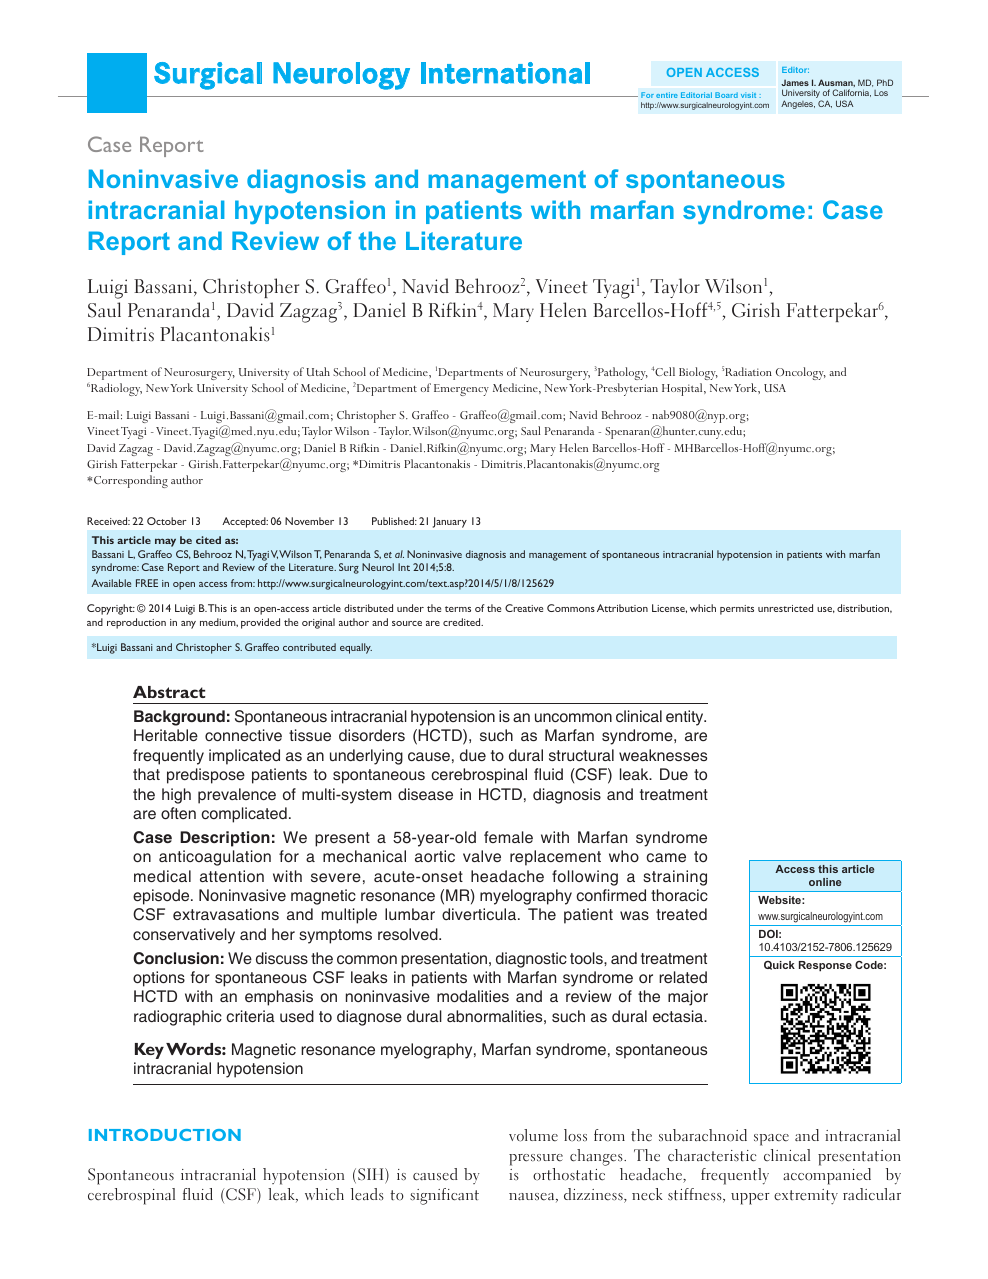 Noninvasive diagnosis and management of spontaneous intracranial